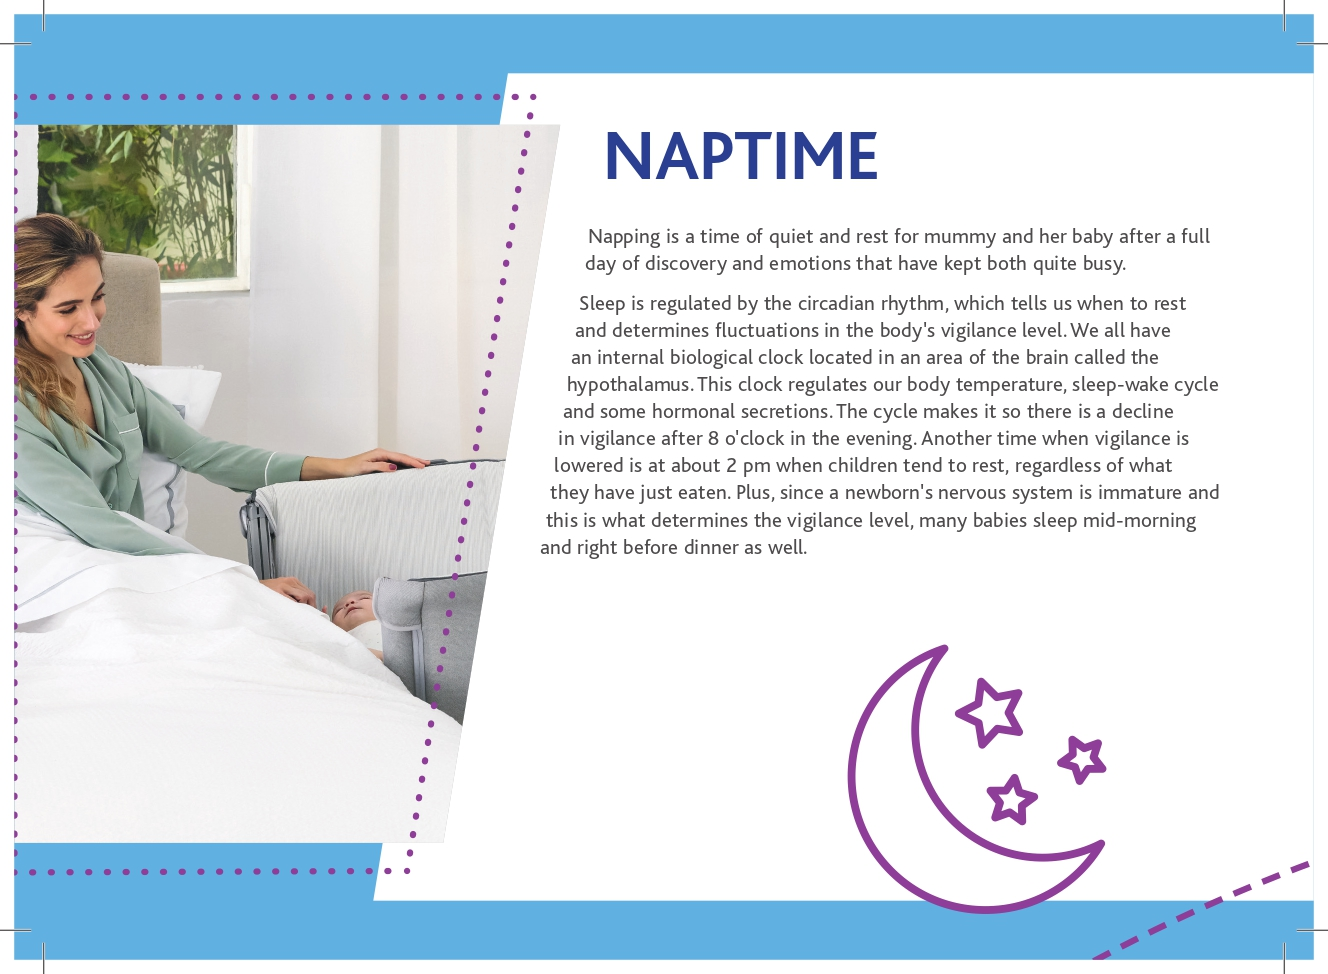 sleep-guide2019-eng-osservatorio-chicco-080319-page-0002.jpg